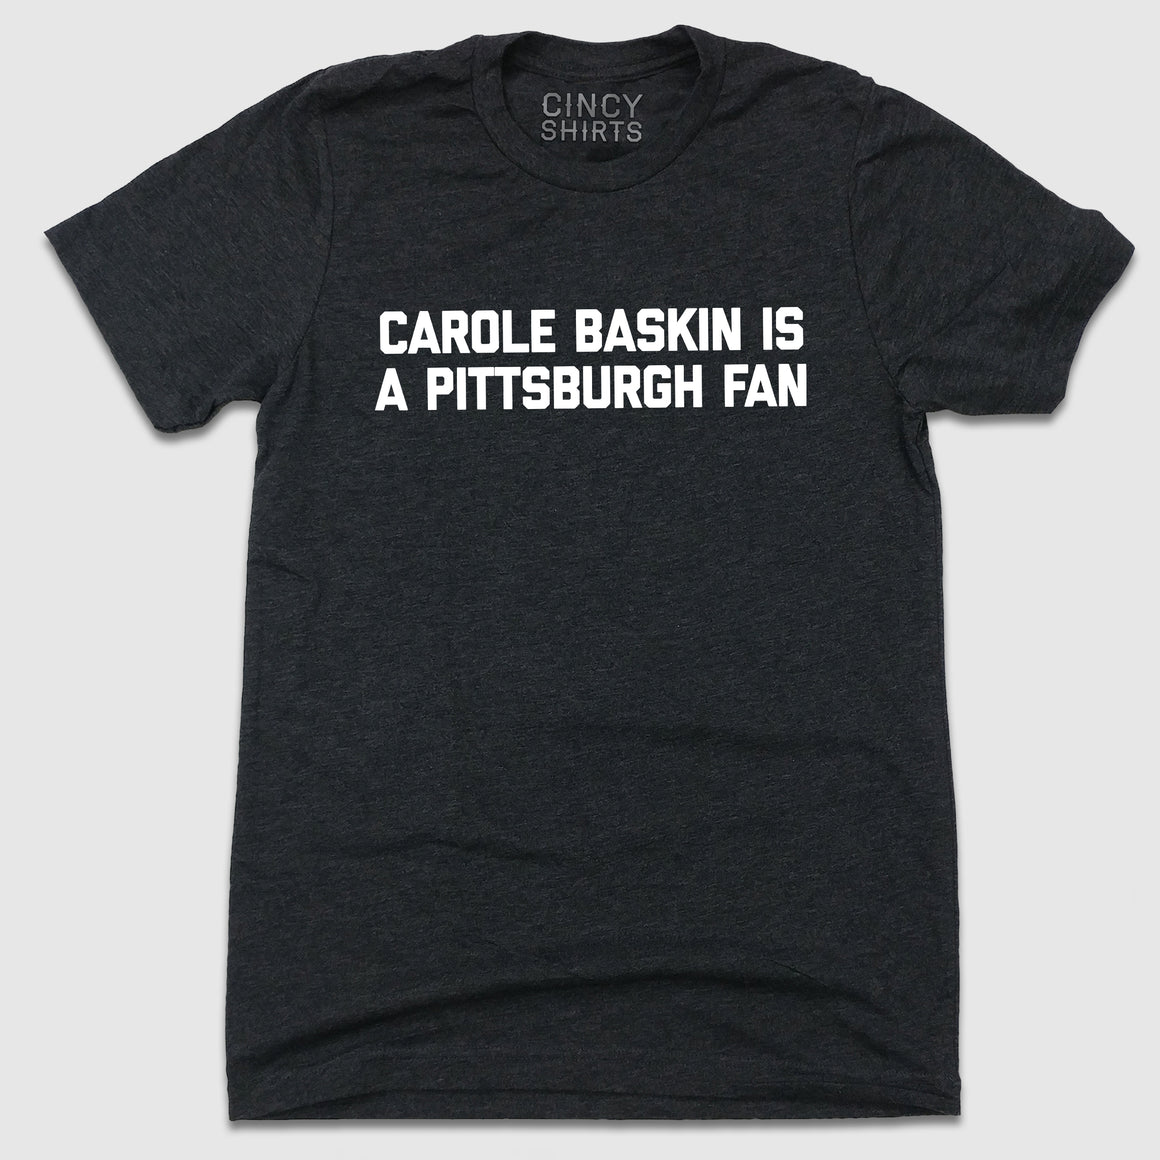 Carole Baskin Is A Pittsburgh Fan - Cincy Shirts